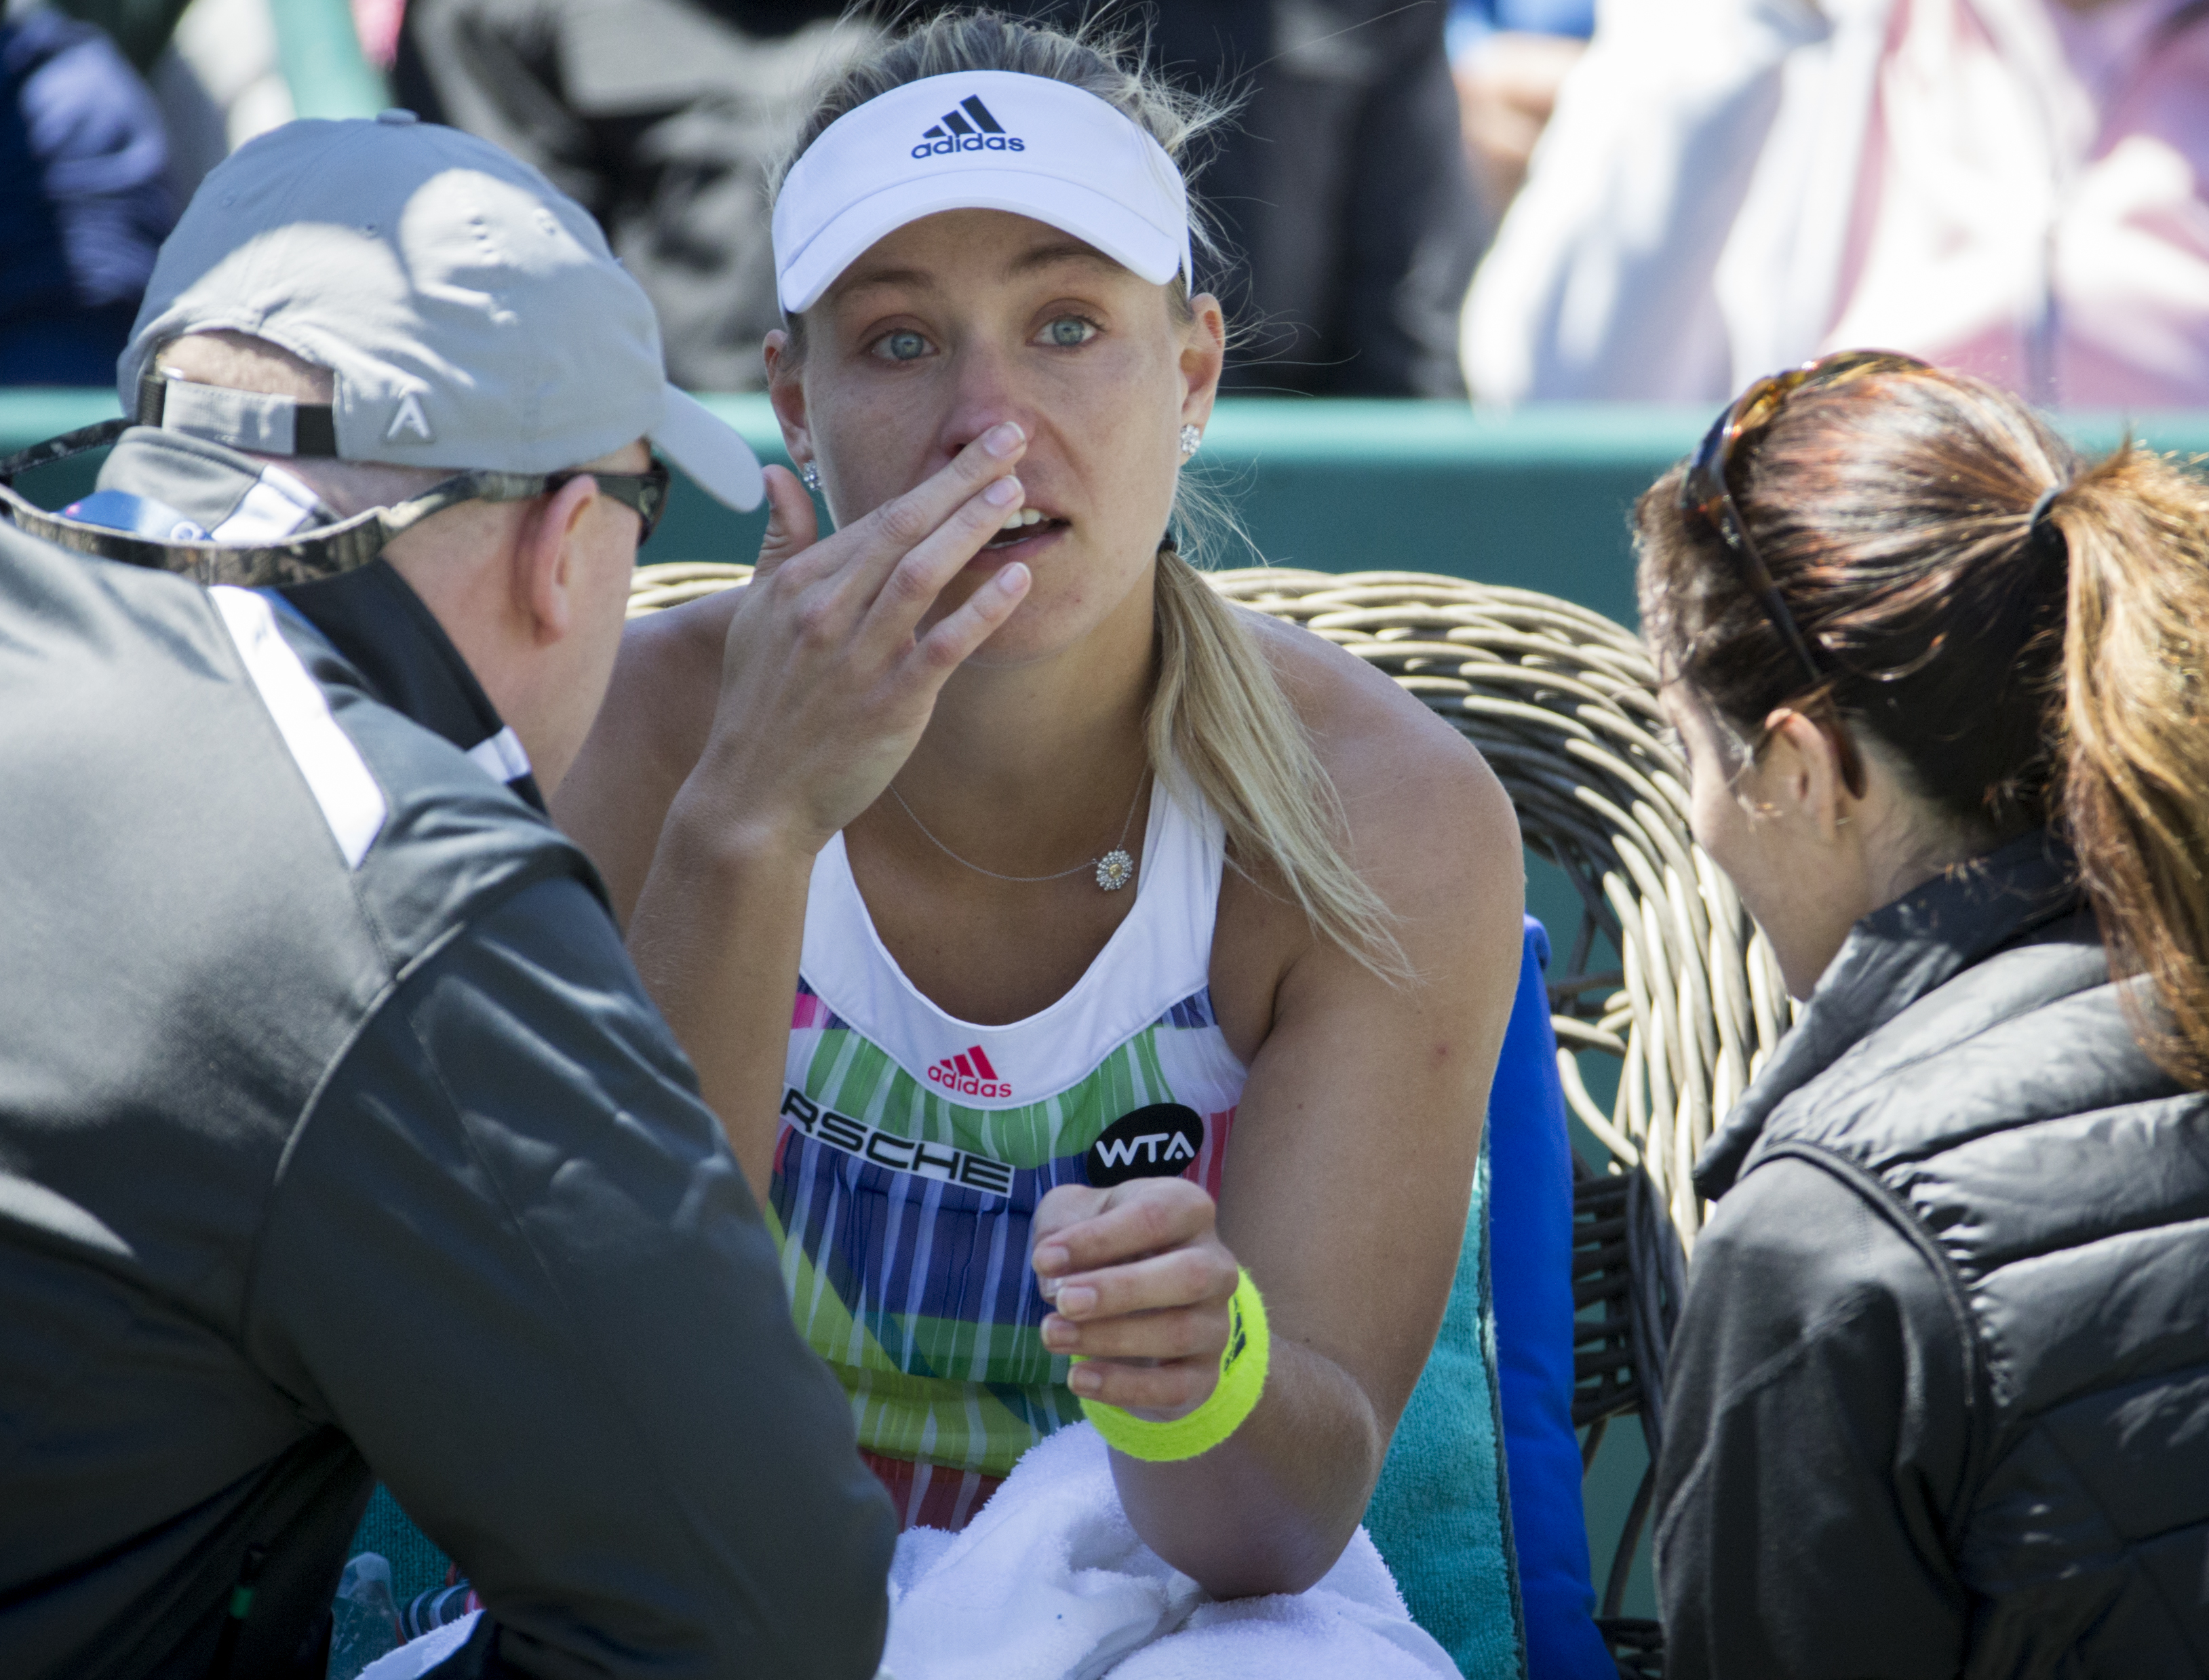 Angelique Kerber of Germany, talks with trainers during a timeout in her tennis match against Sloane Stephens in the semifinals at the Volvo Car Open in Charleston, S.C., Saturday, April 9, 2016. Kerber retired in the second set. (AP Photo/Stephen B. Mort